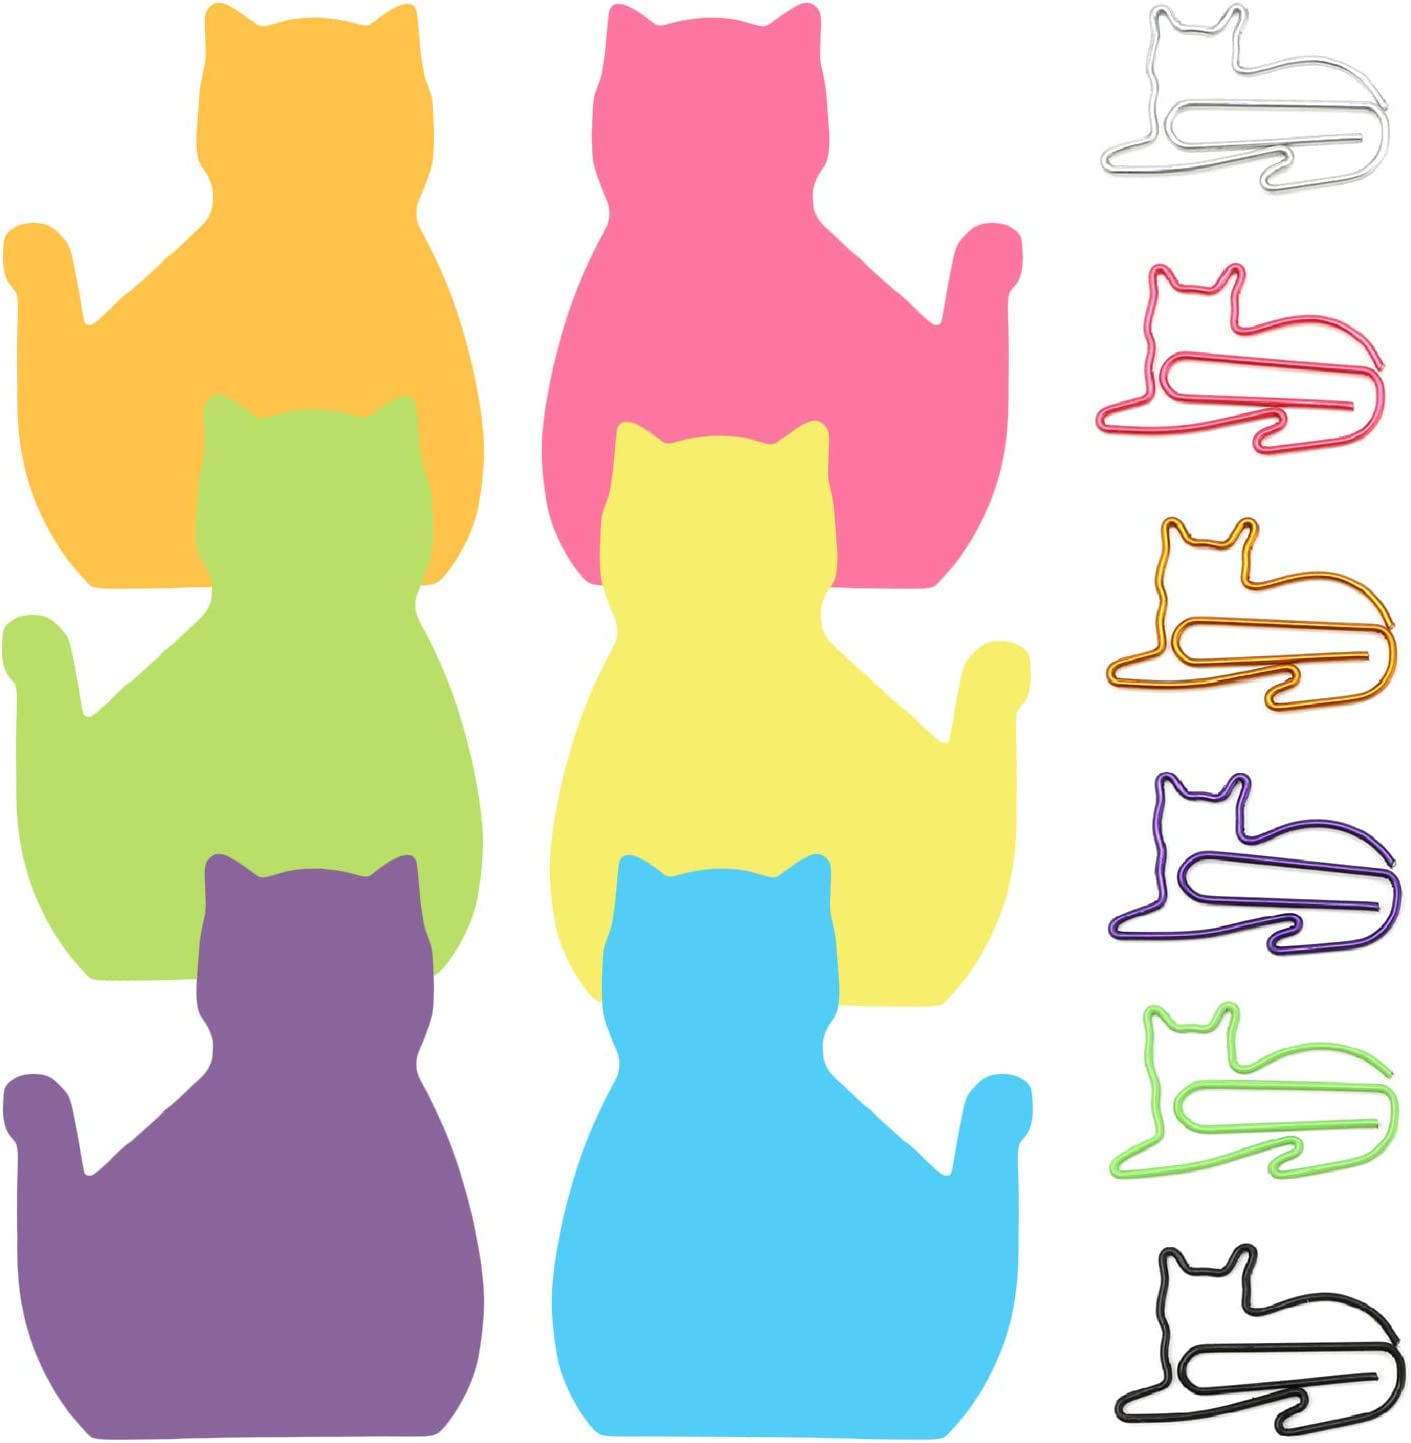 6 Color Cat Paper Clips and Silhouette Cat Sticky Notes Set, Cat Lover Gifts for Women, Cute Cat Office Supplies, Office Desk Accessories for Work School Office